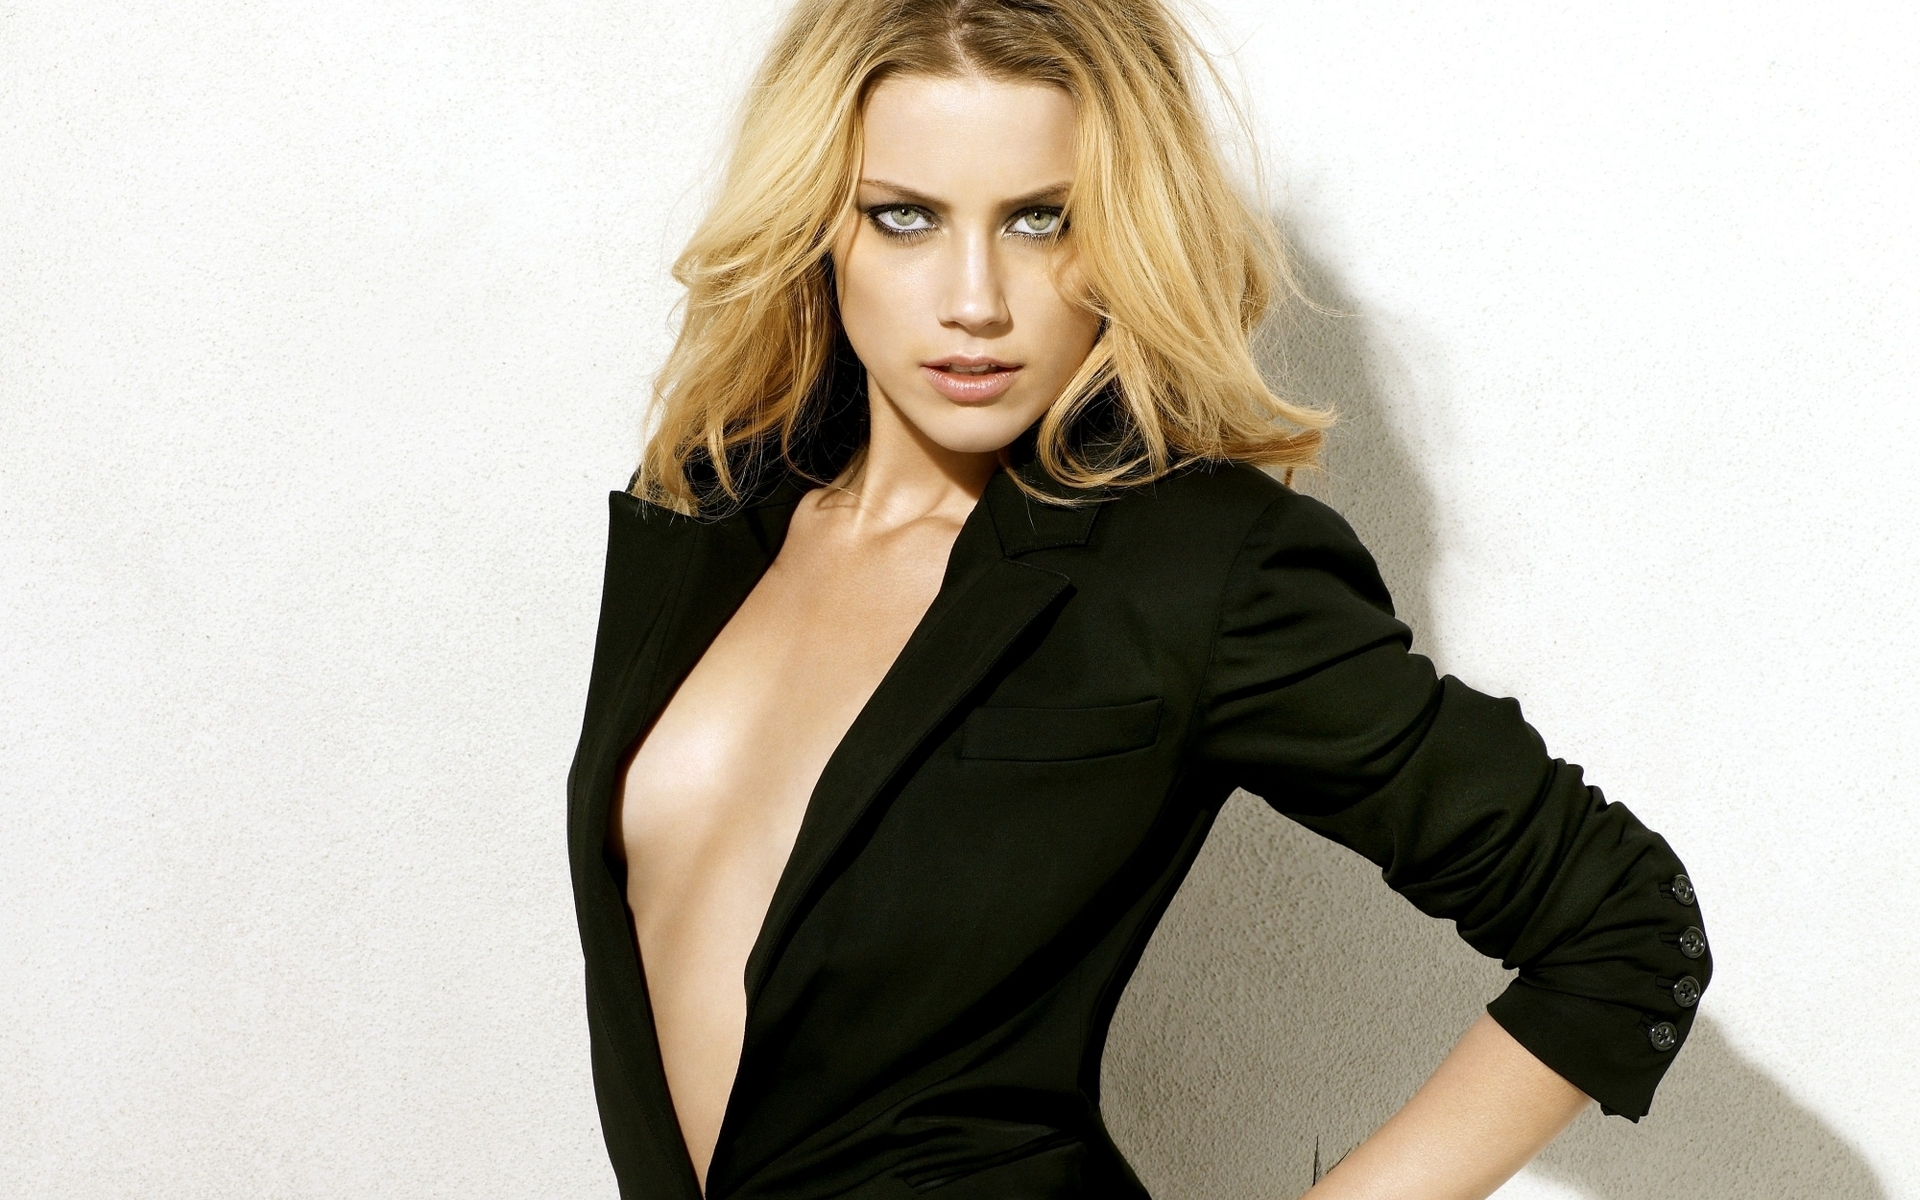 Amber Heard il nuovo sex symbol di Hollywood?